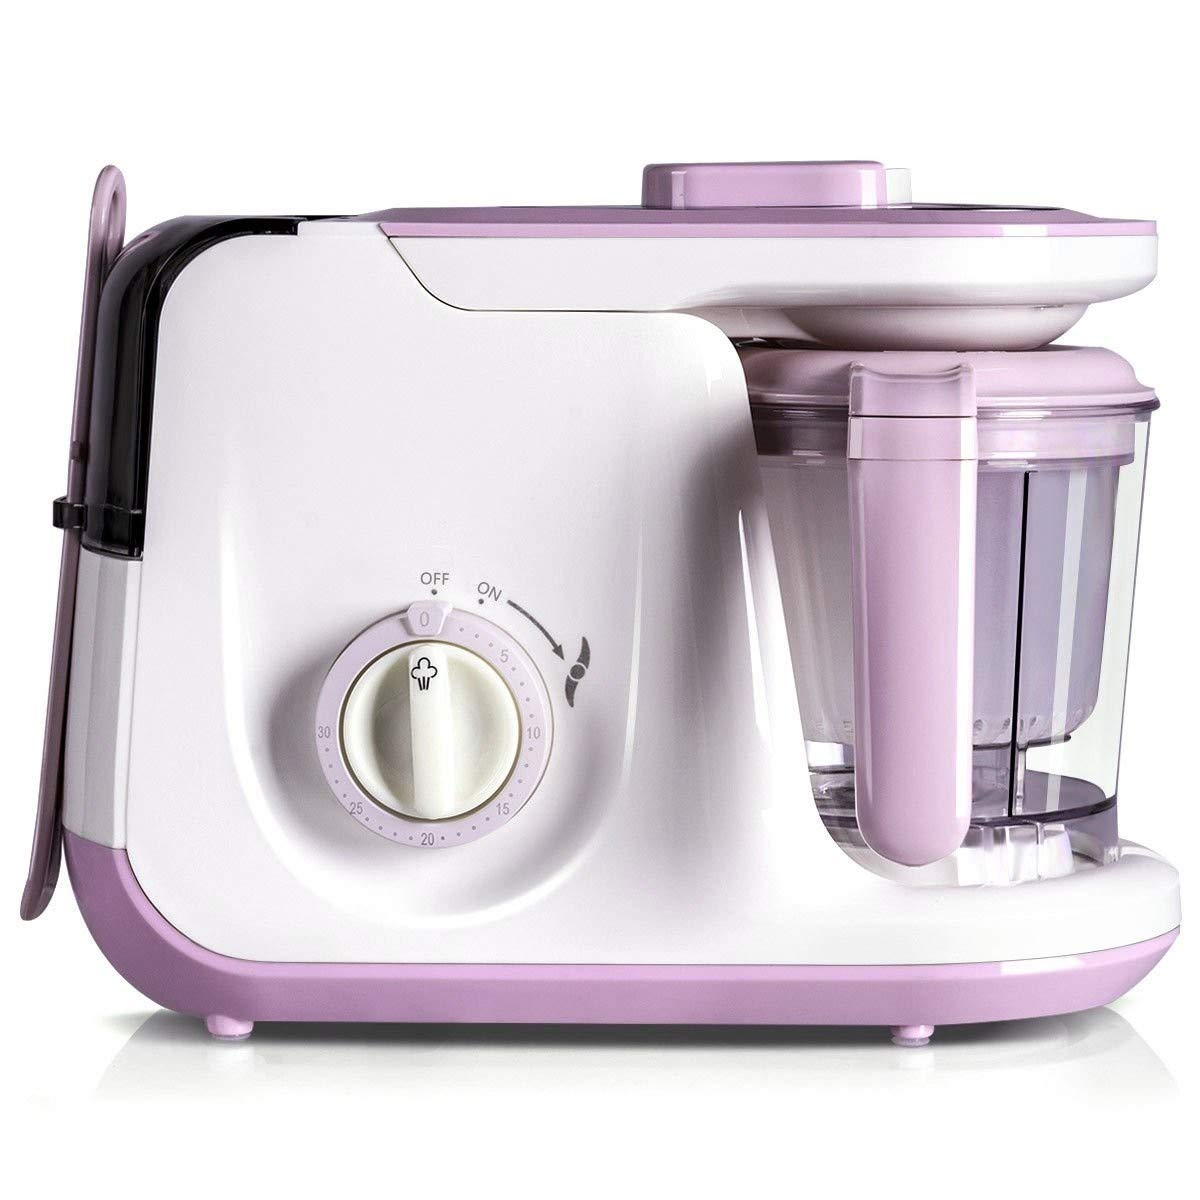 New 5 In 1 Heating Defrosting Baby Food Maker Infant Feeding Blender Large High Quality Durable Appliances Home KItchen